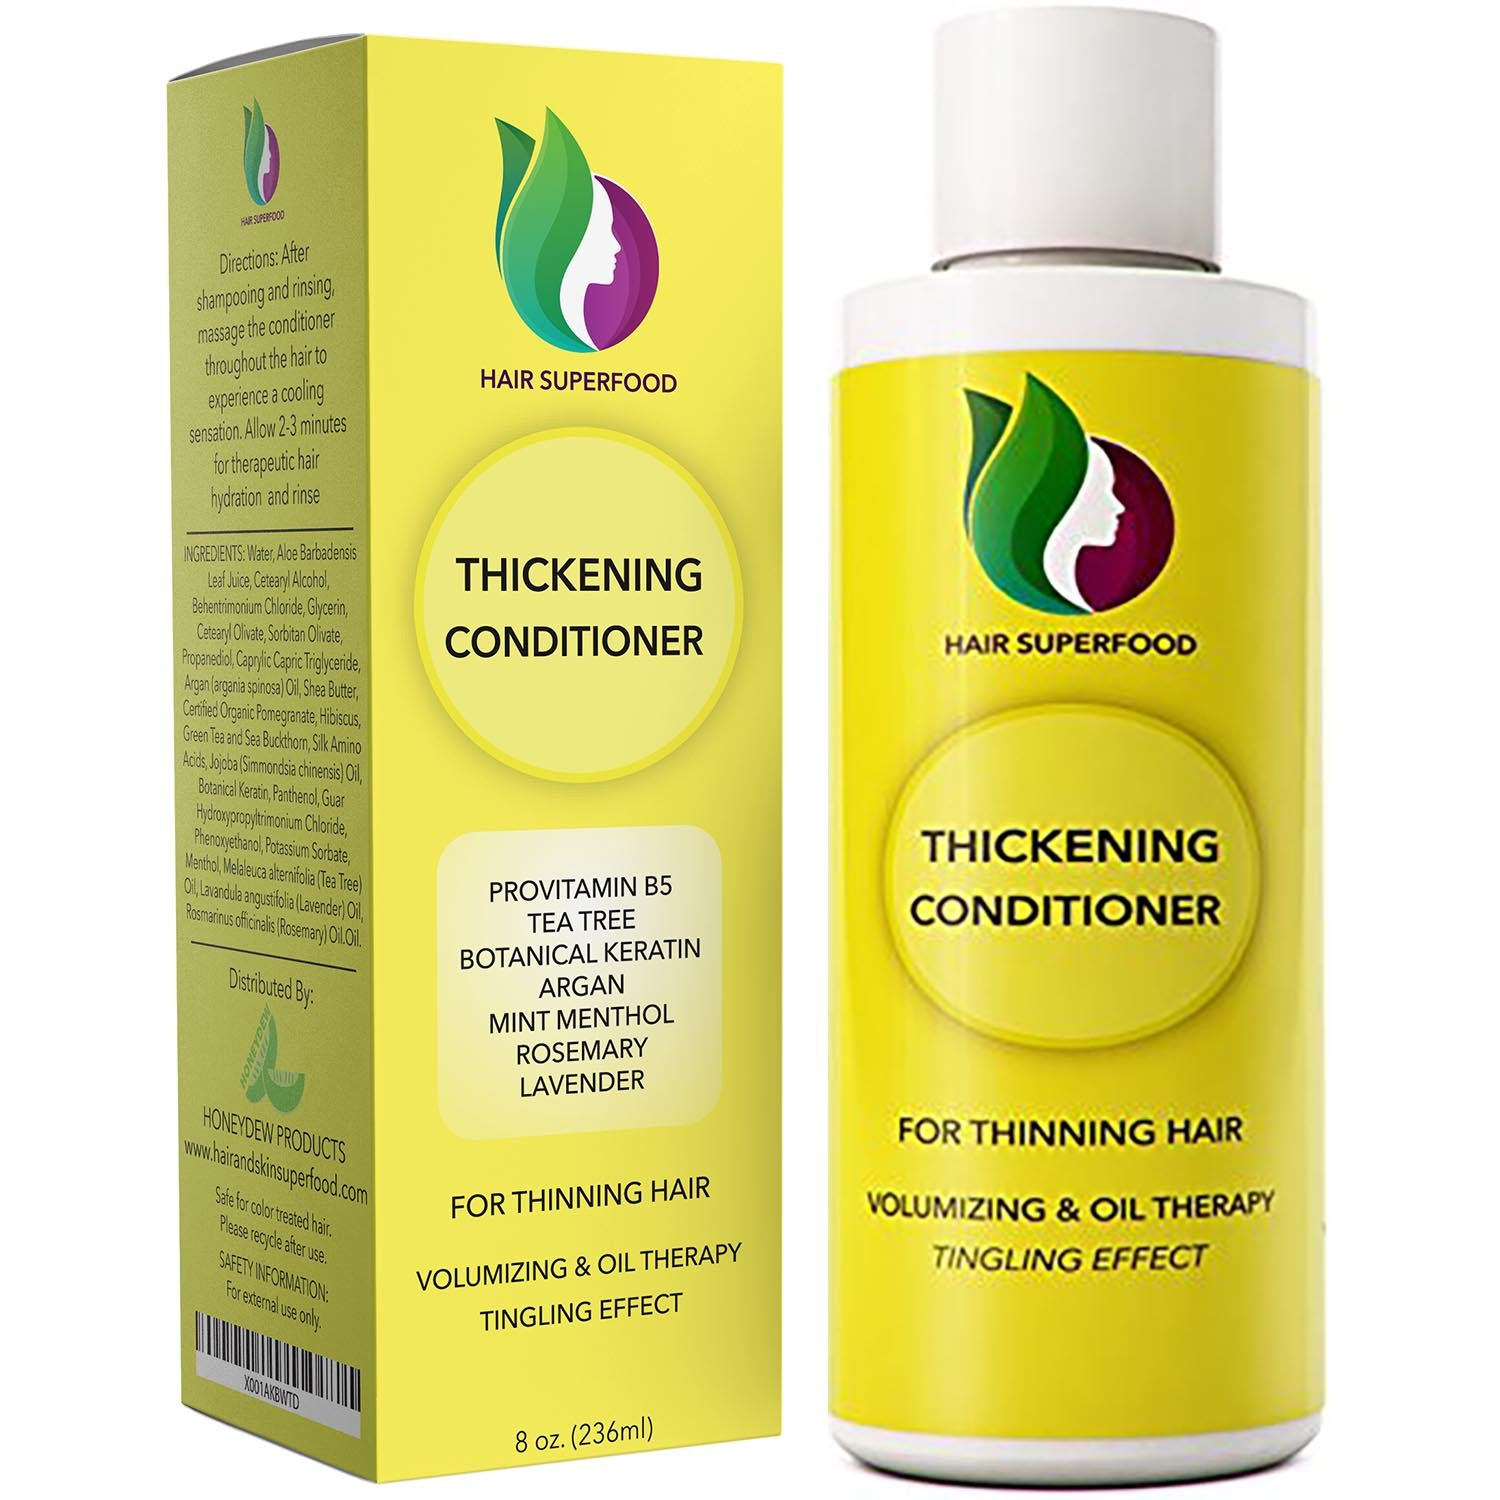 Amazon Com Anti Dandruff Treatment Hair Conditioner For Hair Loss Dry Hair Flaking Scalp Antifungal Tea Tree Scalp Treatment For Itchy Thinning Hair Improve Scalp Health Promote Growth Sulfate Free Beauty